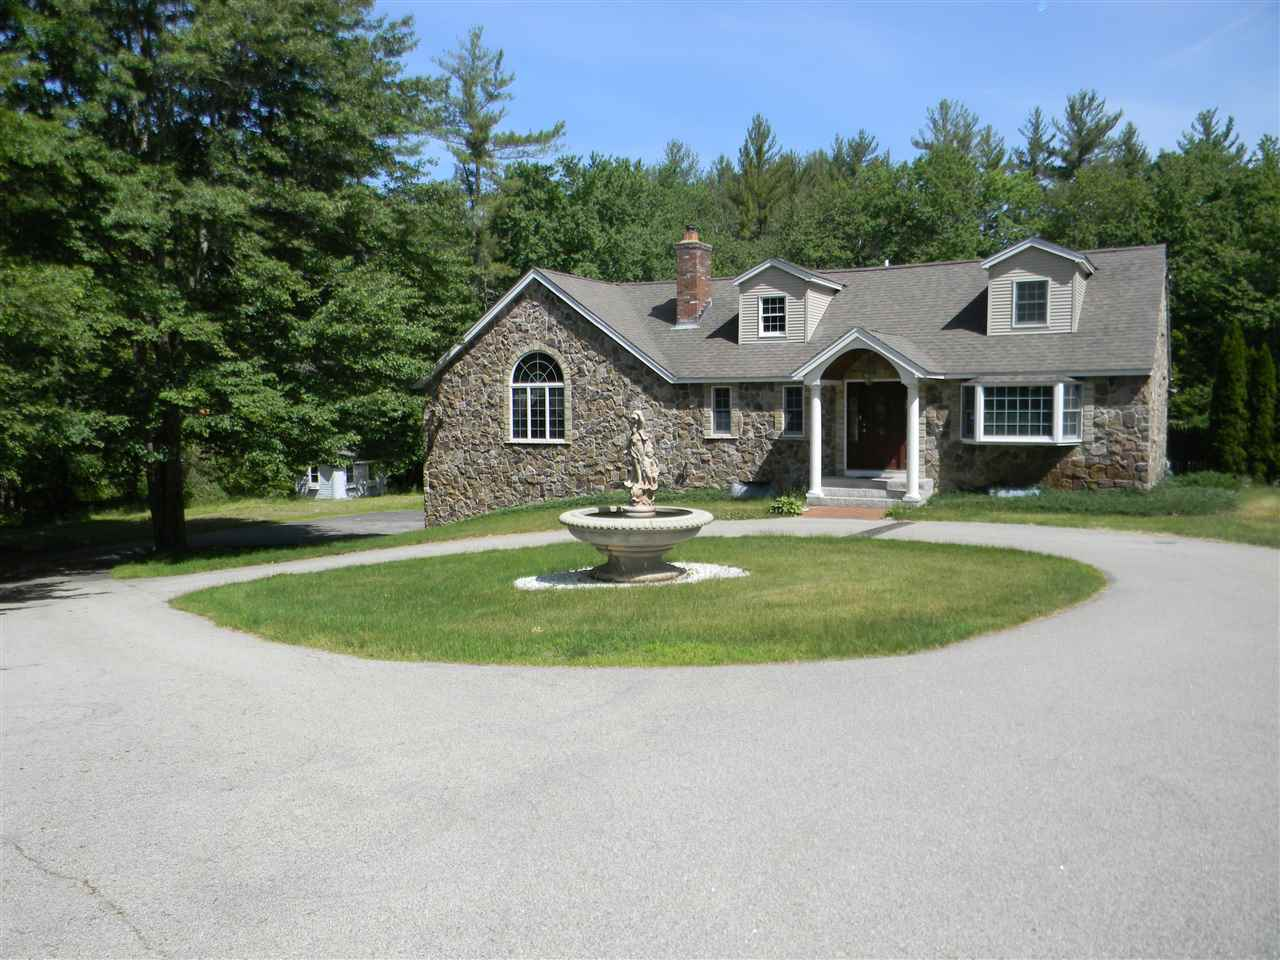 Garage Boston Manor Road 224 New Boston Rd Goffstown Nh 03045 4 Beds 2 5 Baths